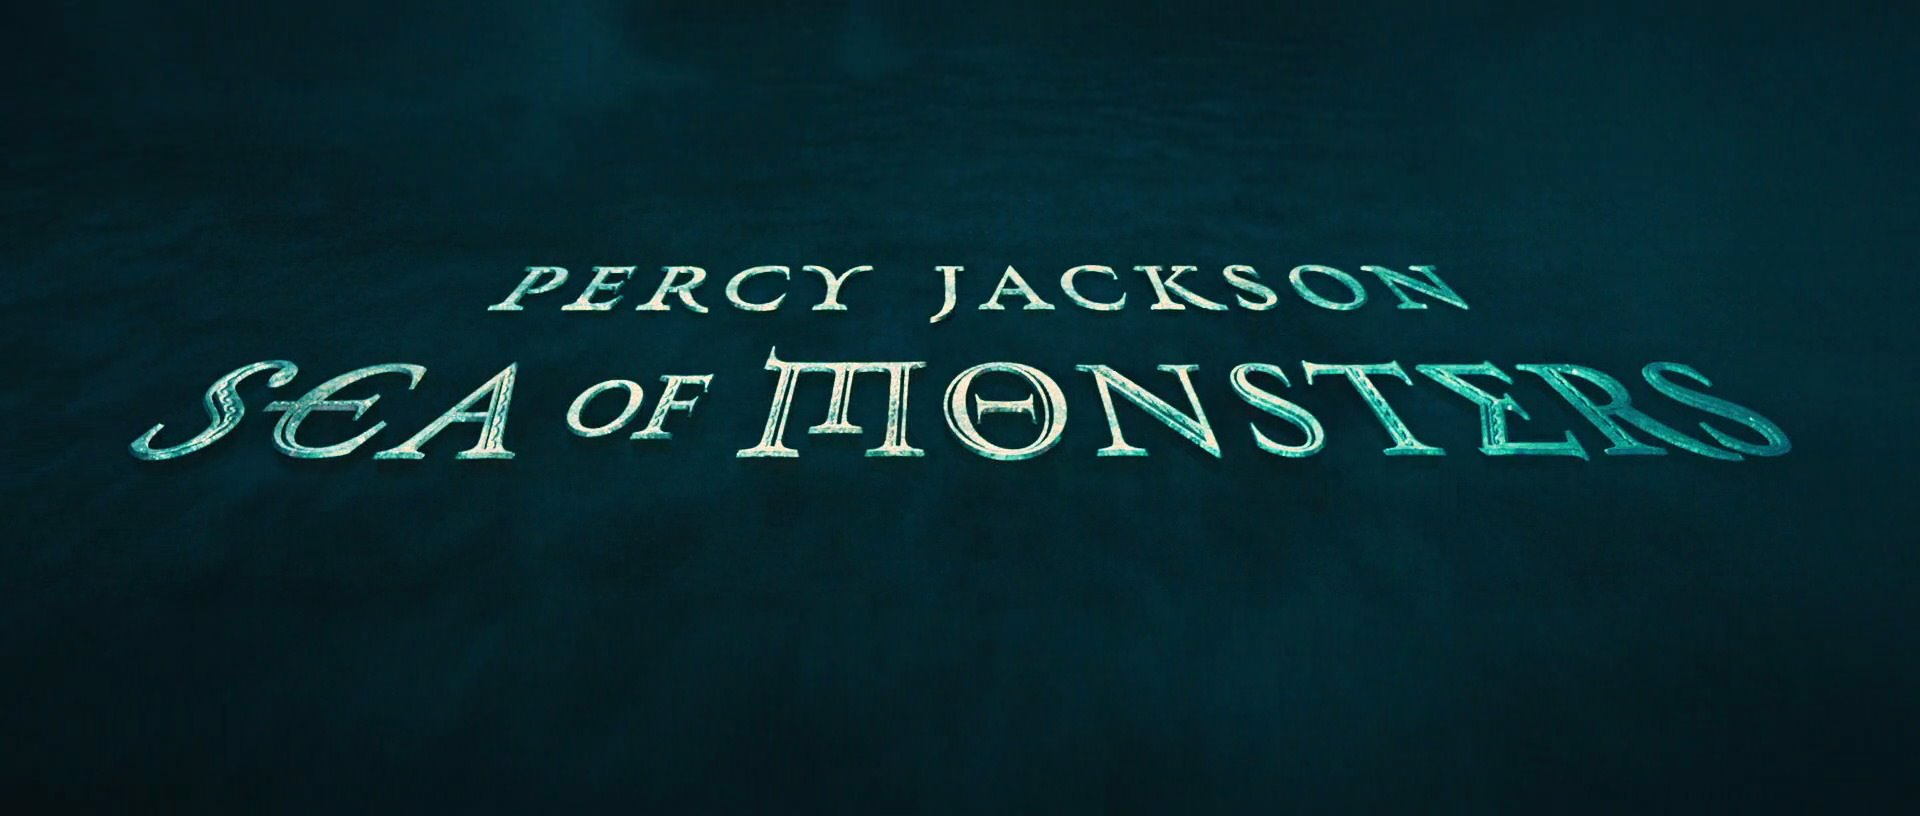 Percy Jackson: Sea of Monsters (2013) - Photo Gallery - IMDb